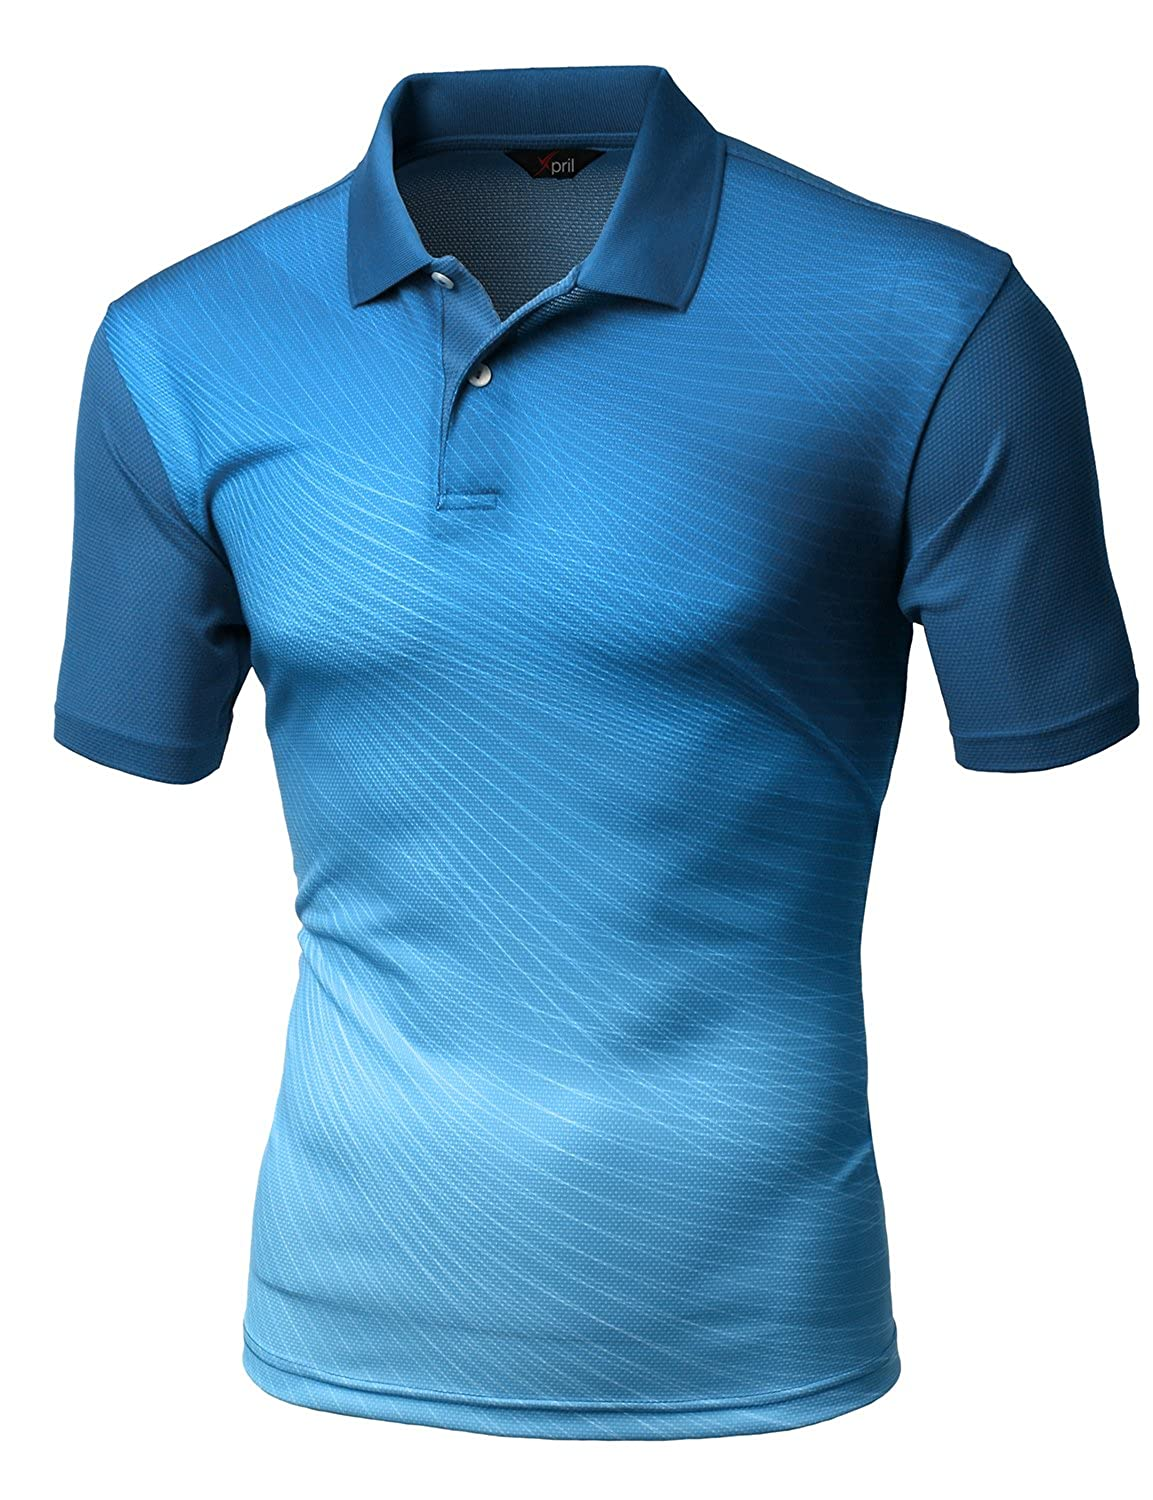 Xpril Men\'s Cool Max Fabric Sporty Design Printed Polo T-Shirt